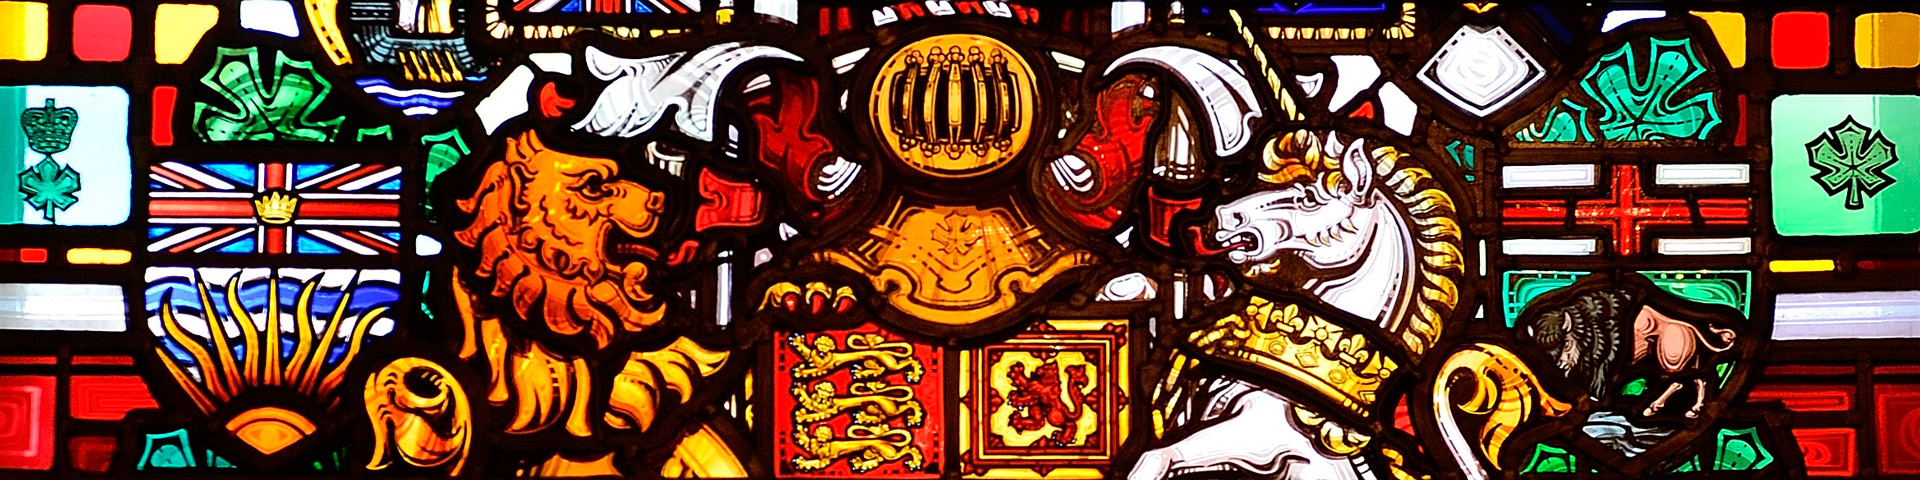 Stained glass with coats of arms